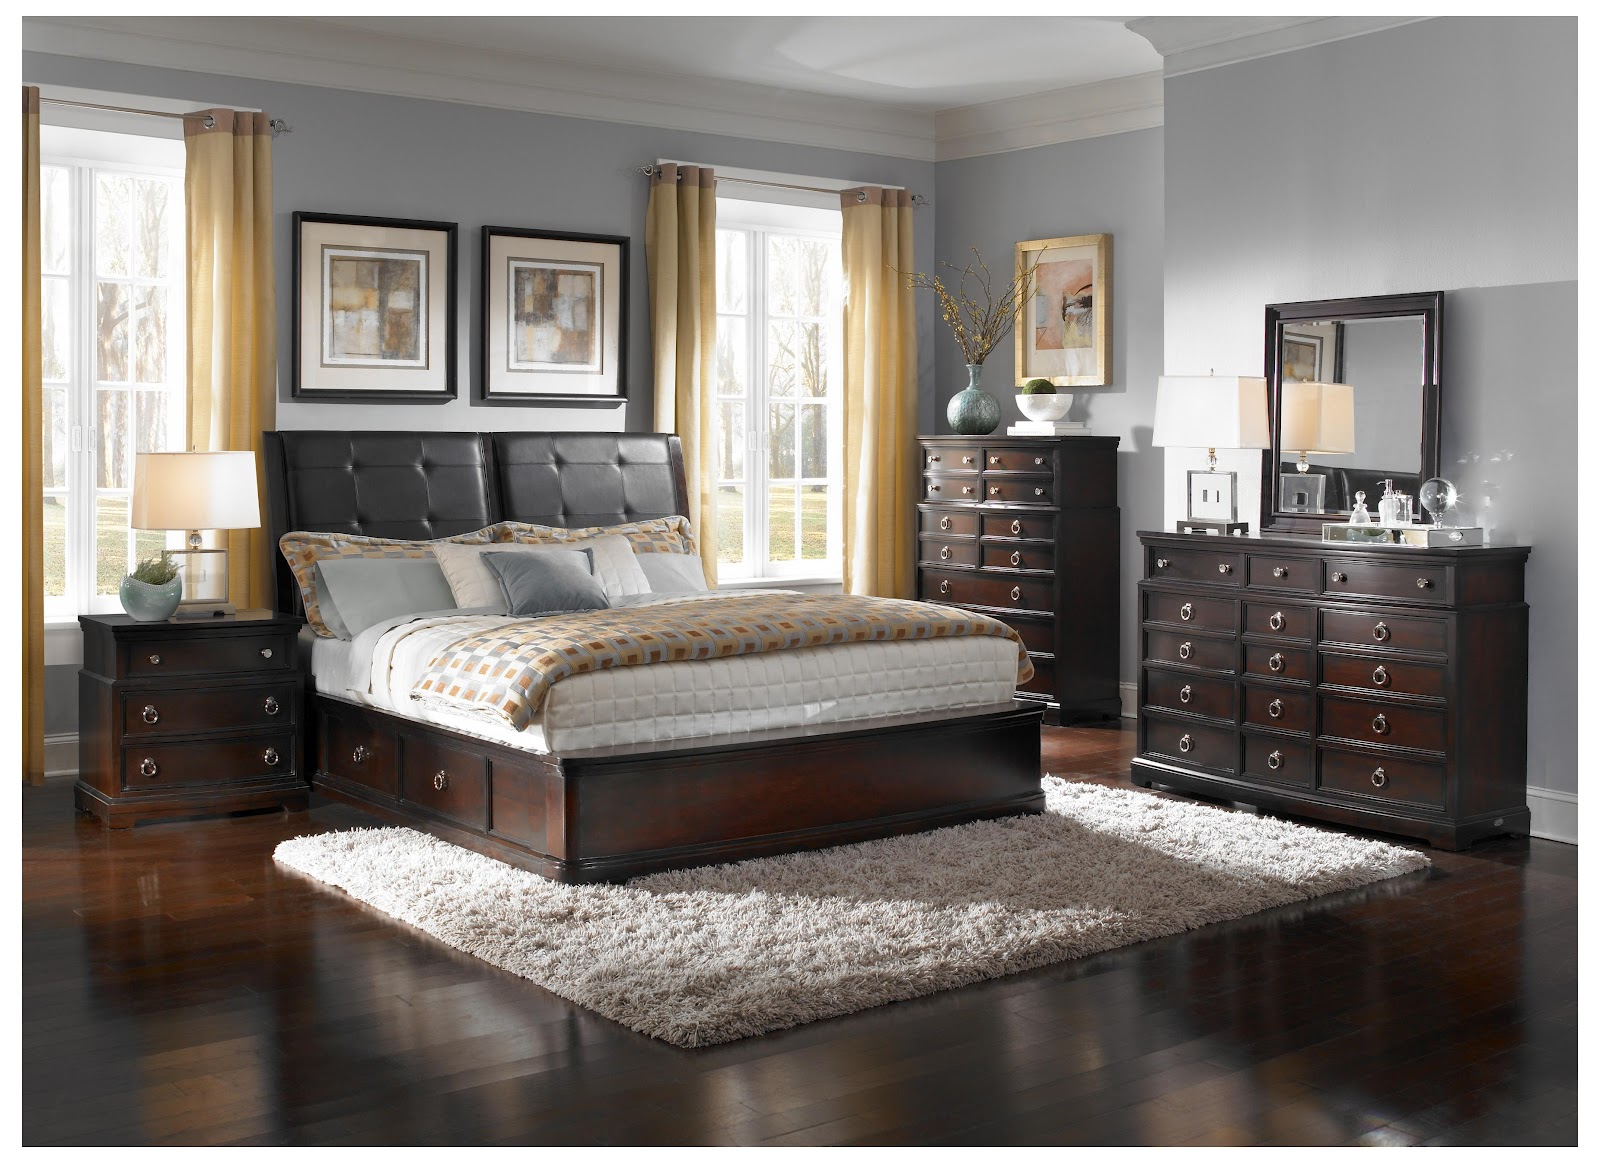 Knoxville Wholesale Furniture Outlet ... knoxville traditional furniture bedroom furniture. knoxville furniture